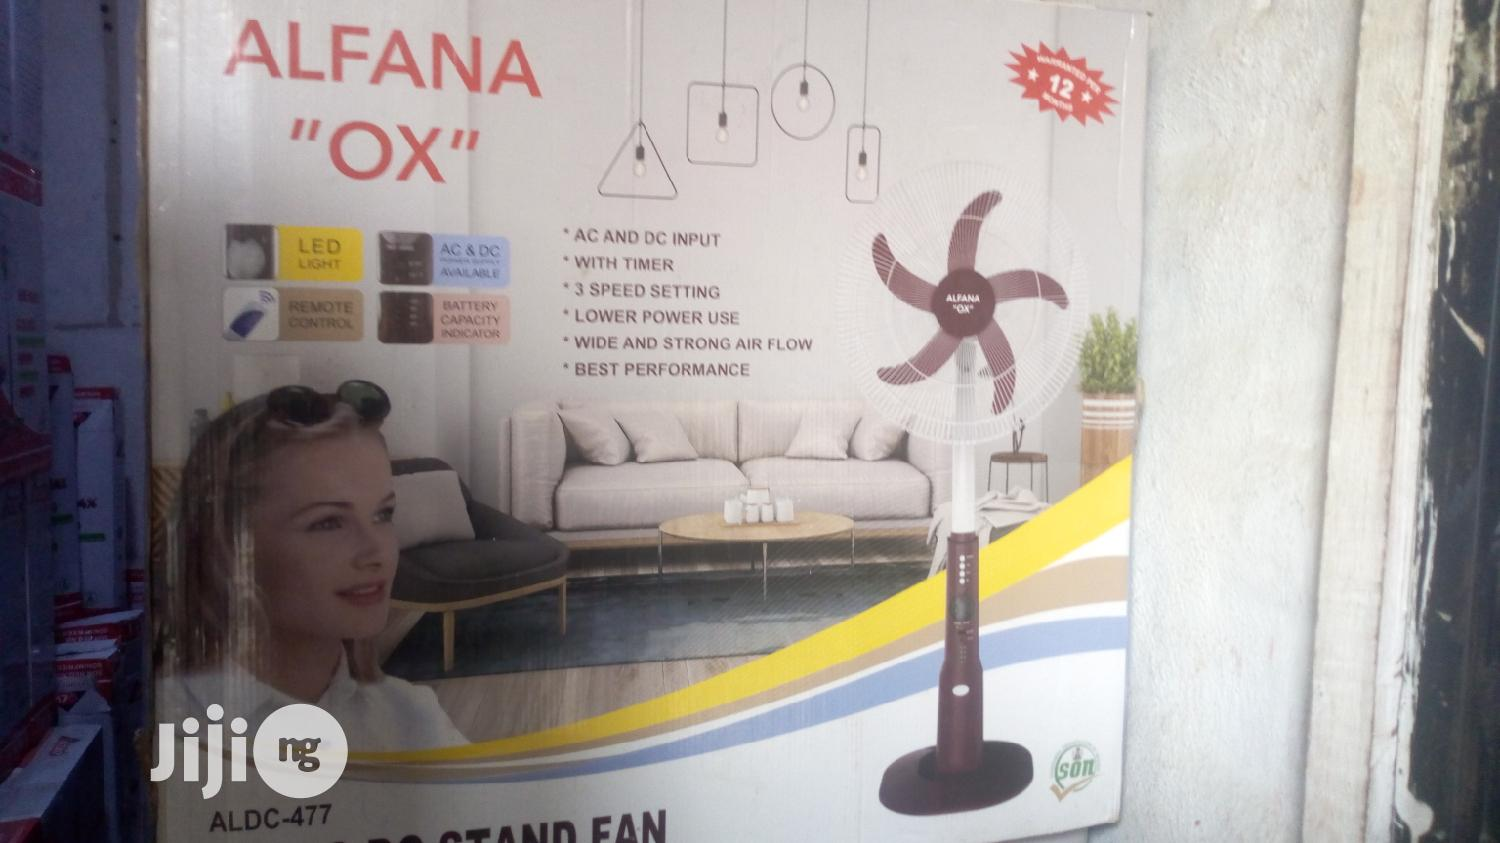 Alfana OX 18 Inches AC DC Rechargeable Standing Fan